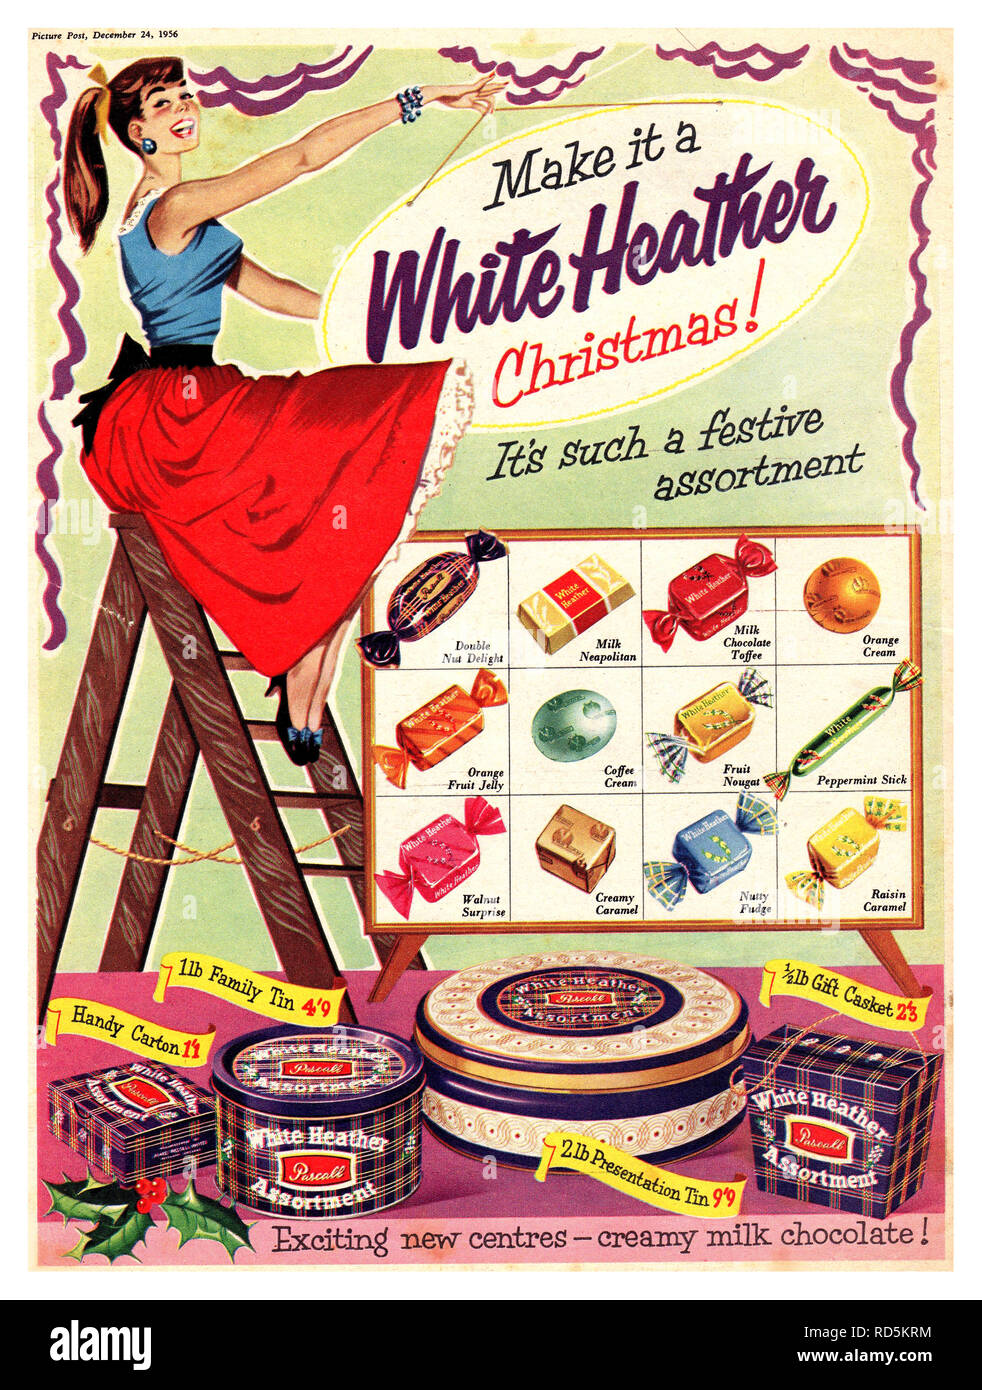 WHITE HEATHER ASSORTMENT  Vintage press advertisement 'PICTURE POST' Christmas 1956 for various sized tins of chocolate confectionary sweets including a 2lb Presentation Tin priced at 9/9 pre decimal £sd - Stock Image